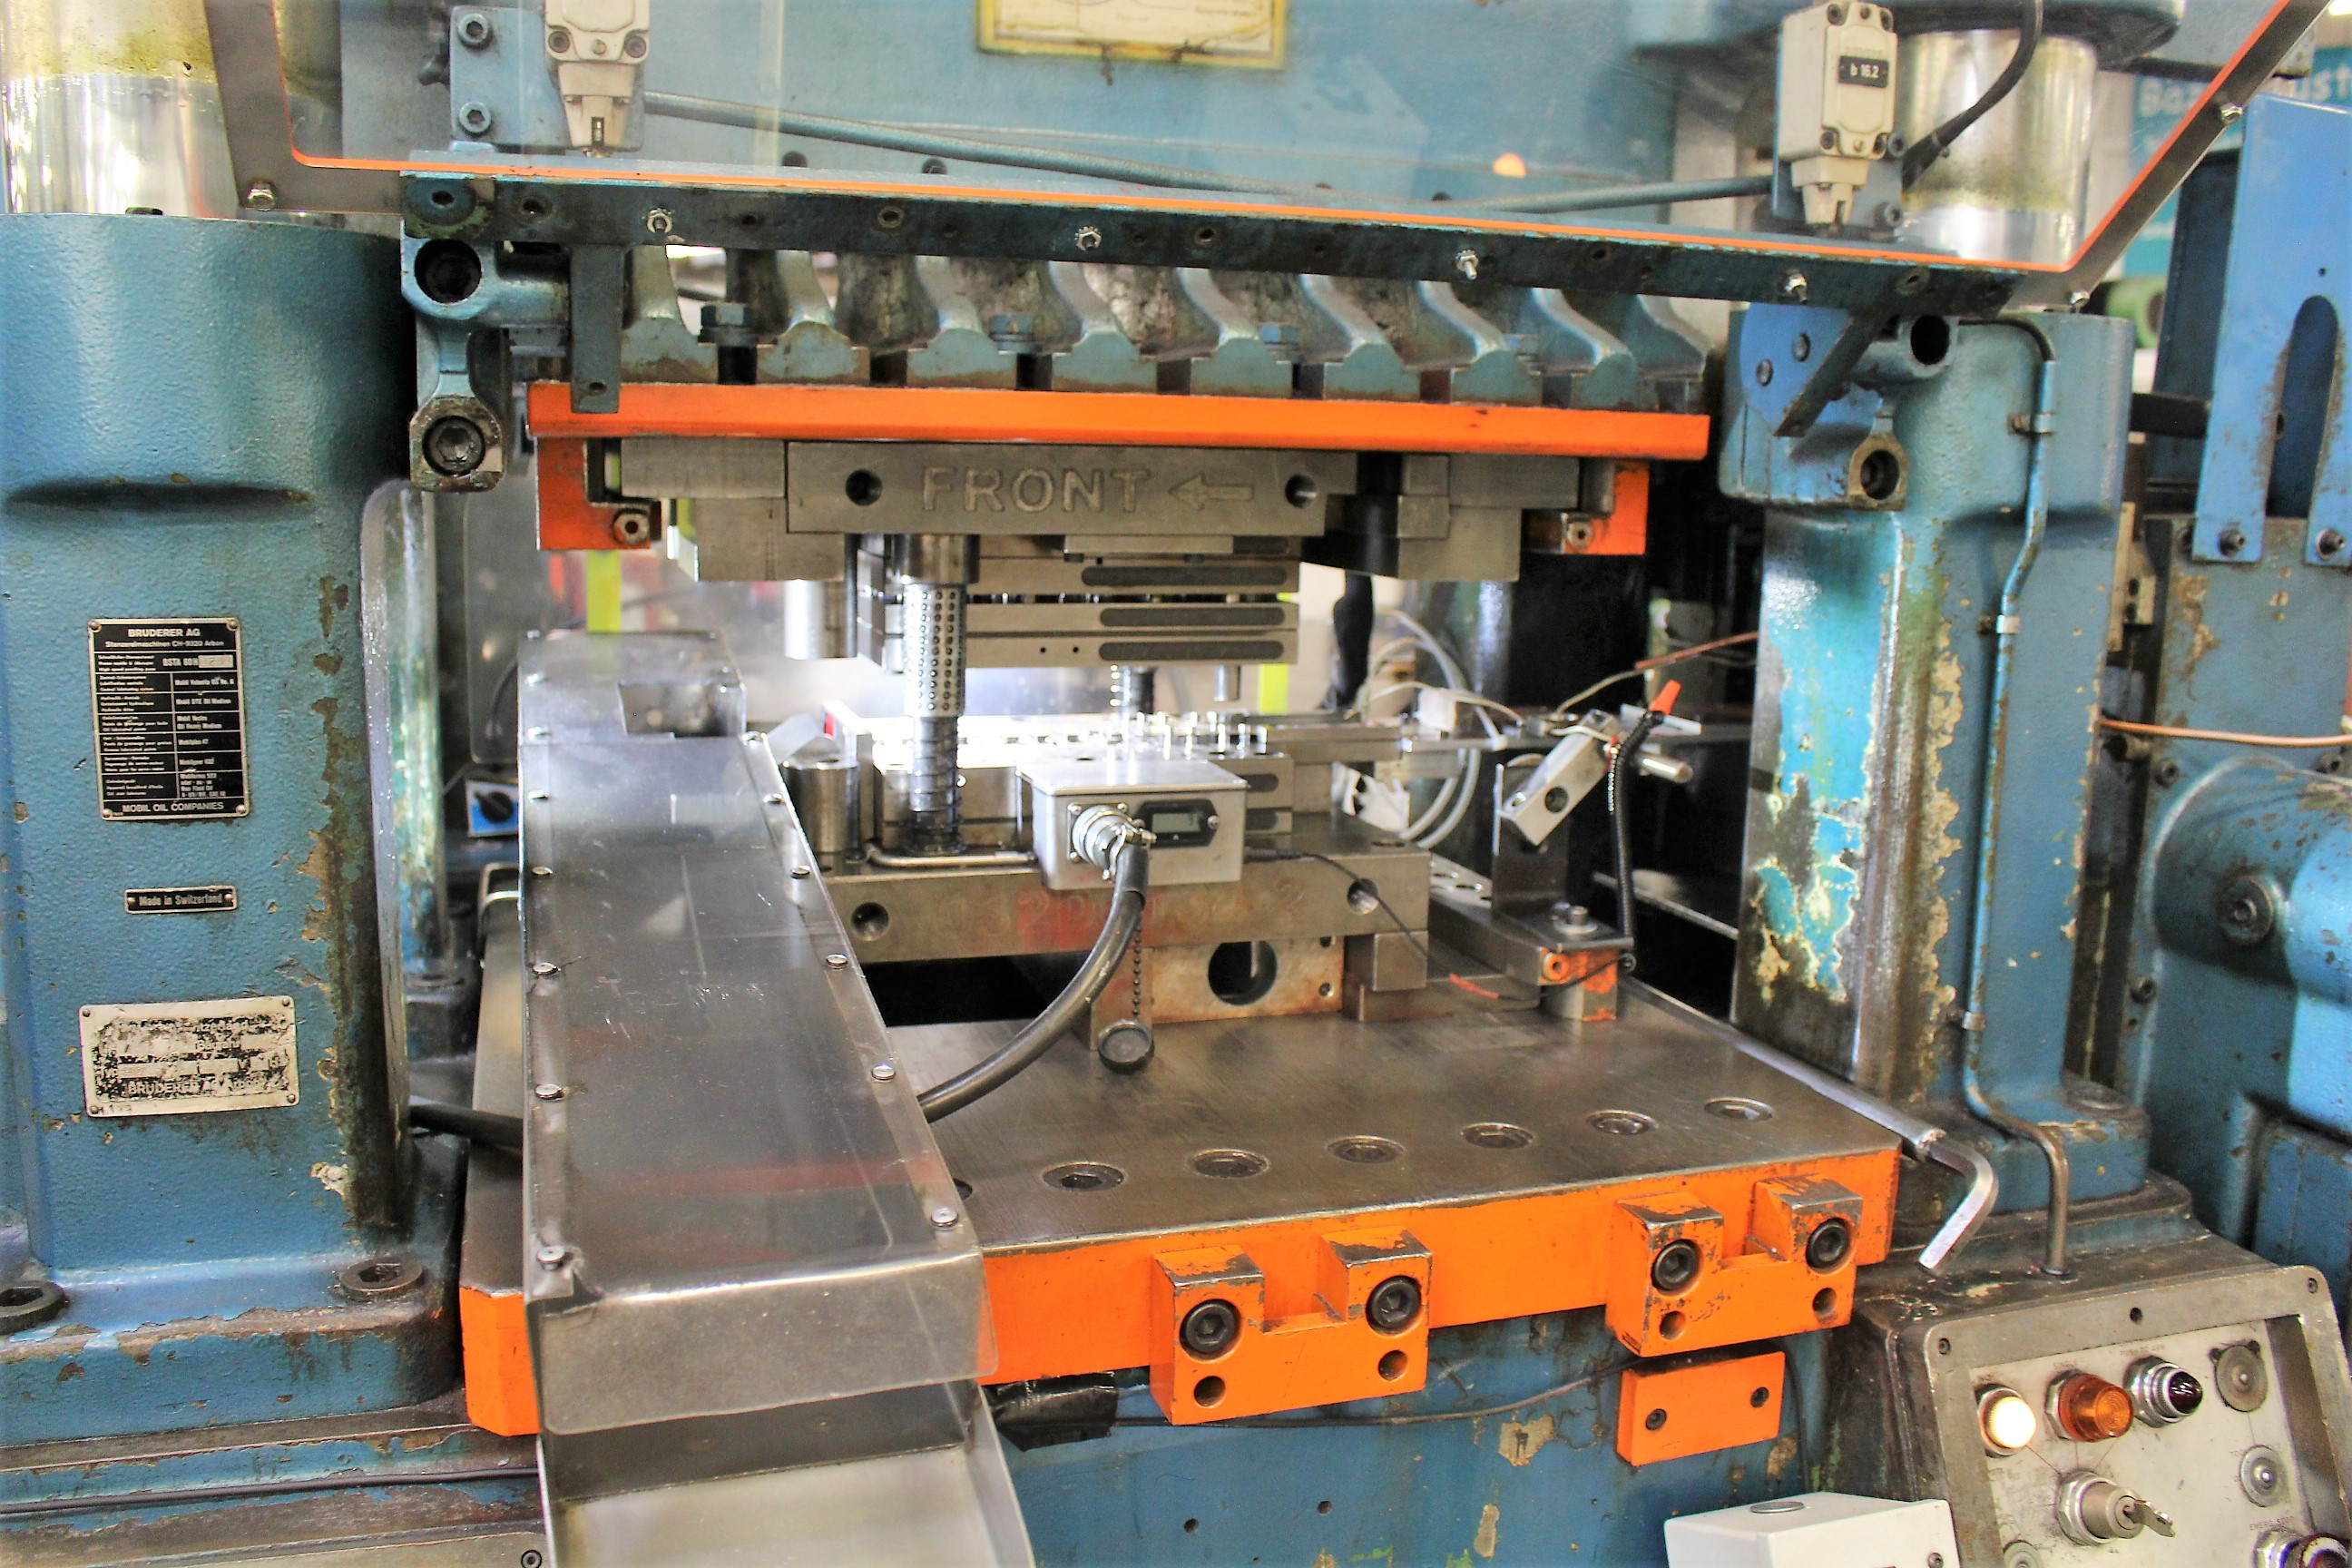 BRUDERER MODEL BSTA-60H HIGH SPEED STAMPING PRESS, 60-TON, DIE PRO 1500 WINTRISS DIE PROTECTION, 4 - Image 4 of 20